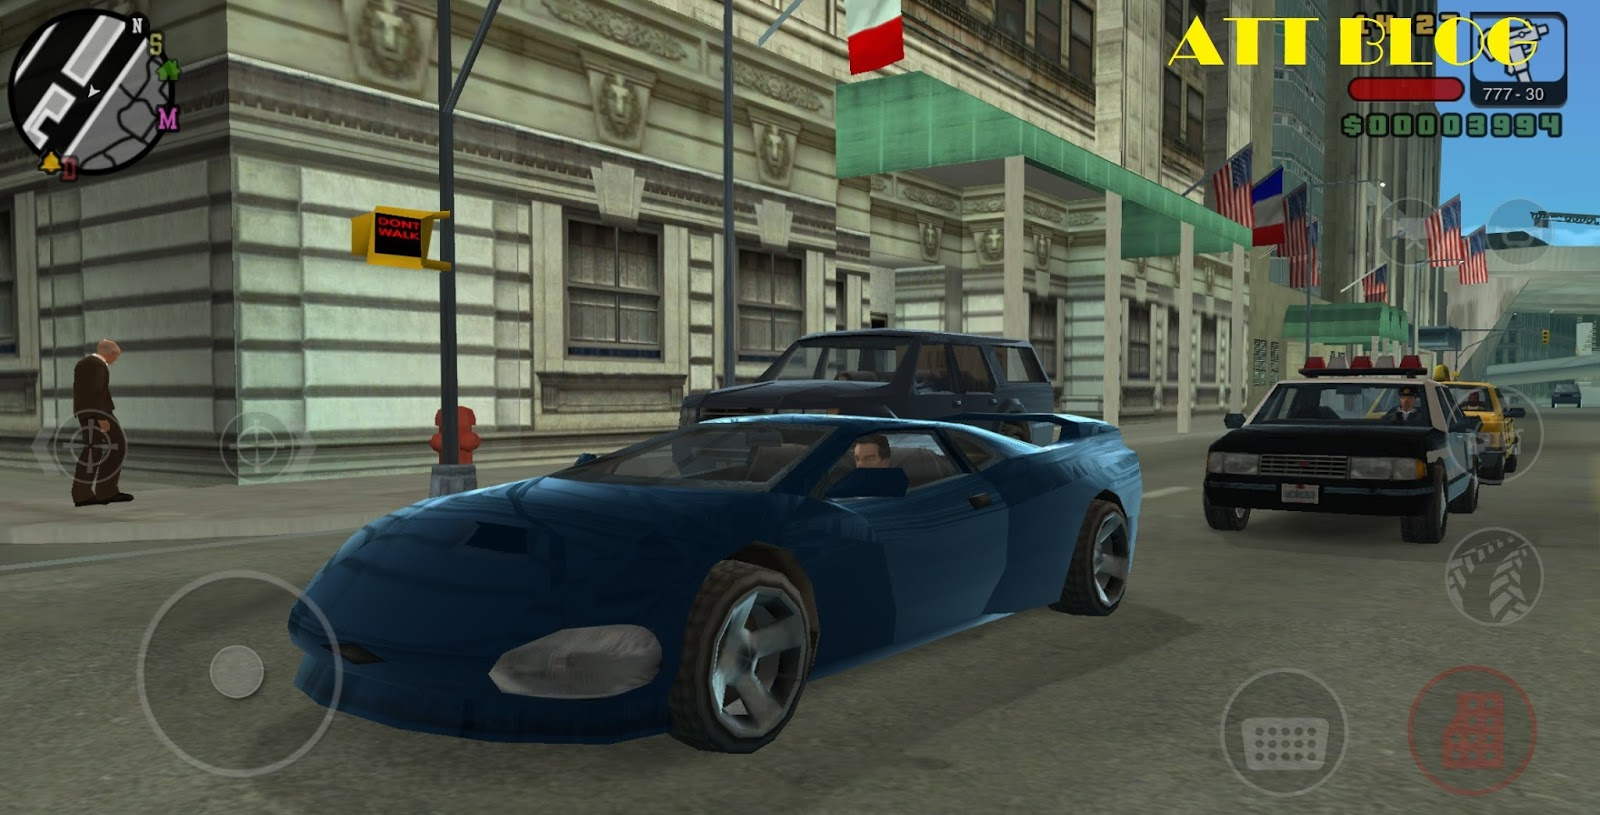 download gta liberty city stories apk data highly compressed